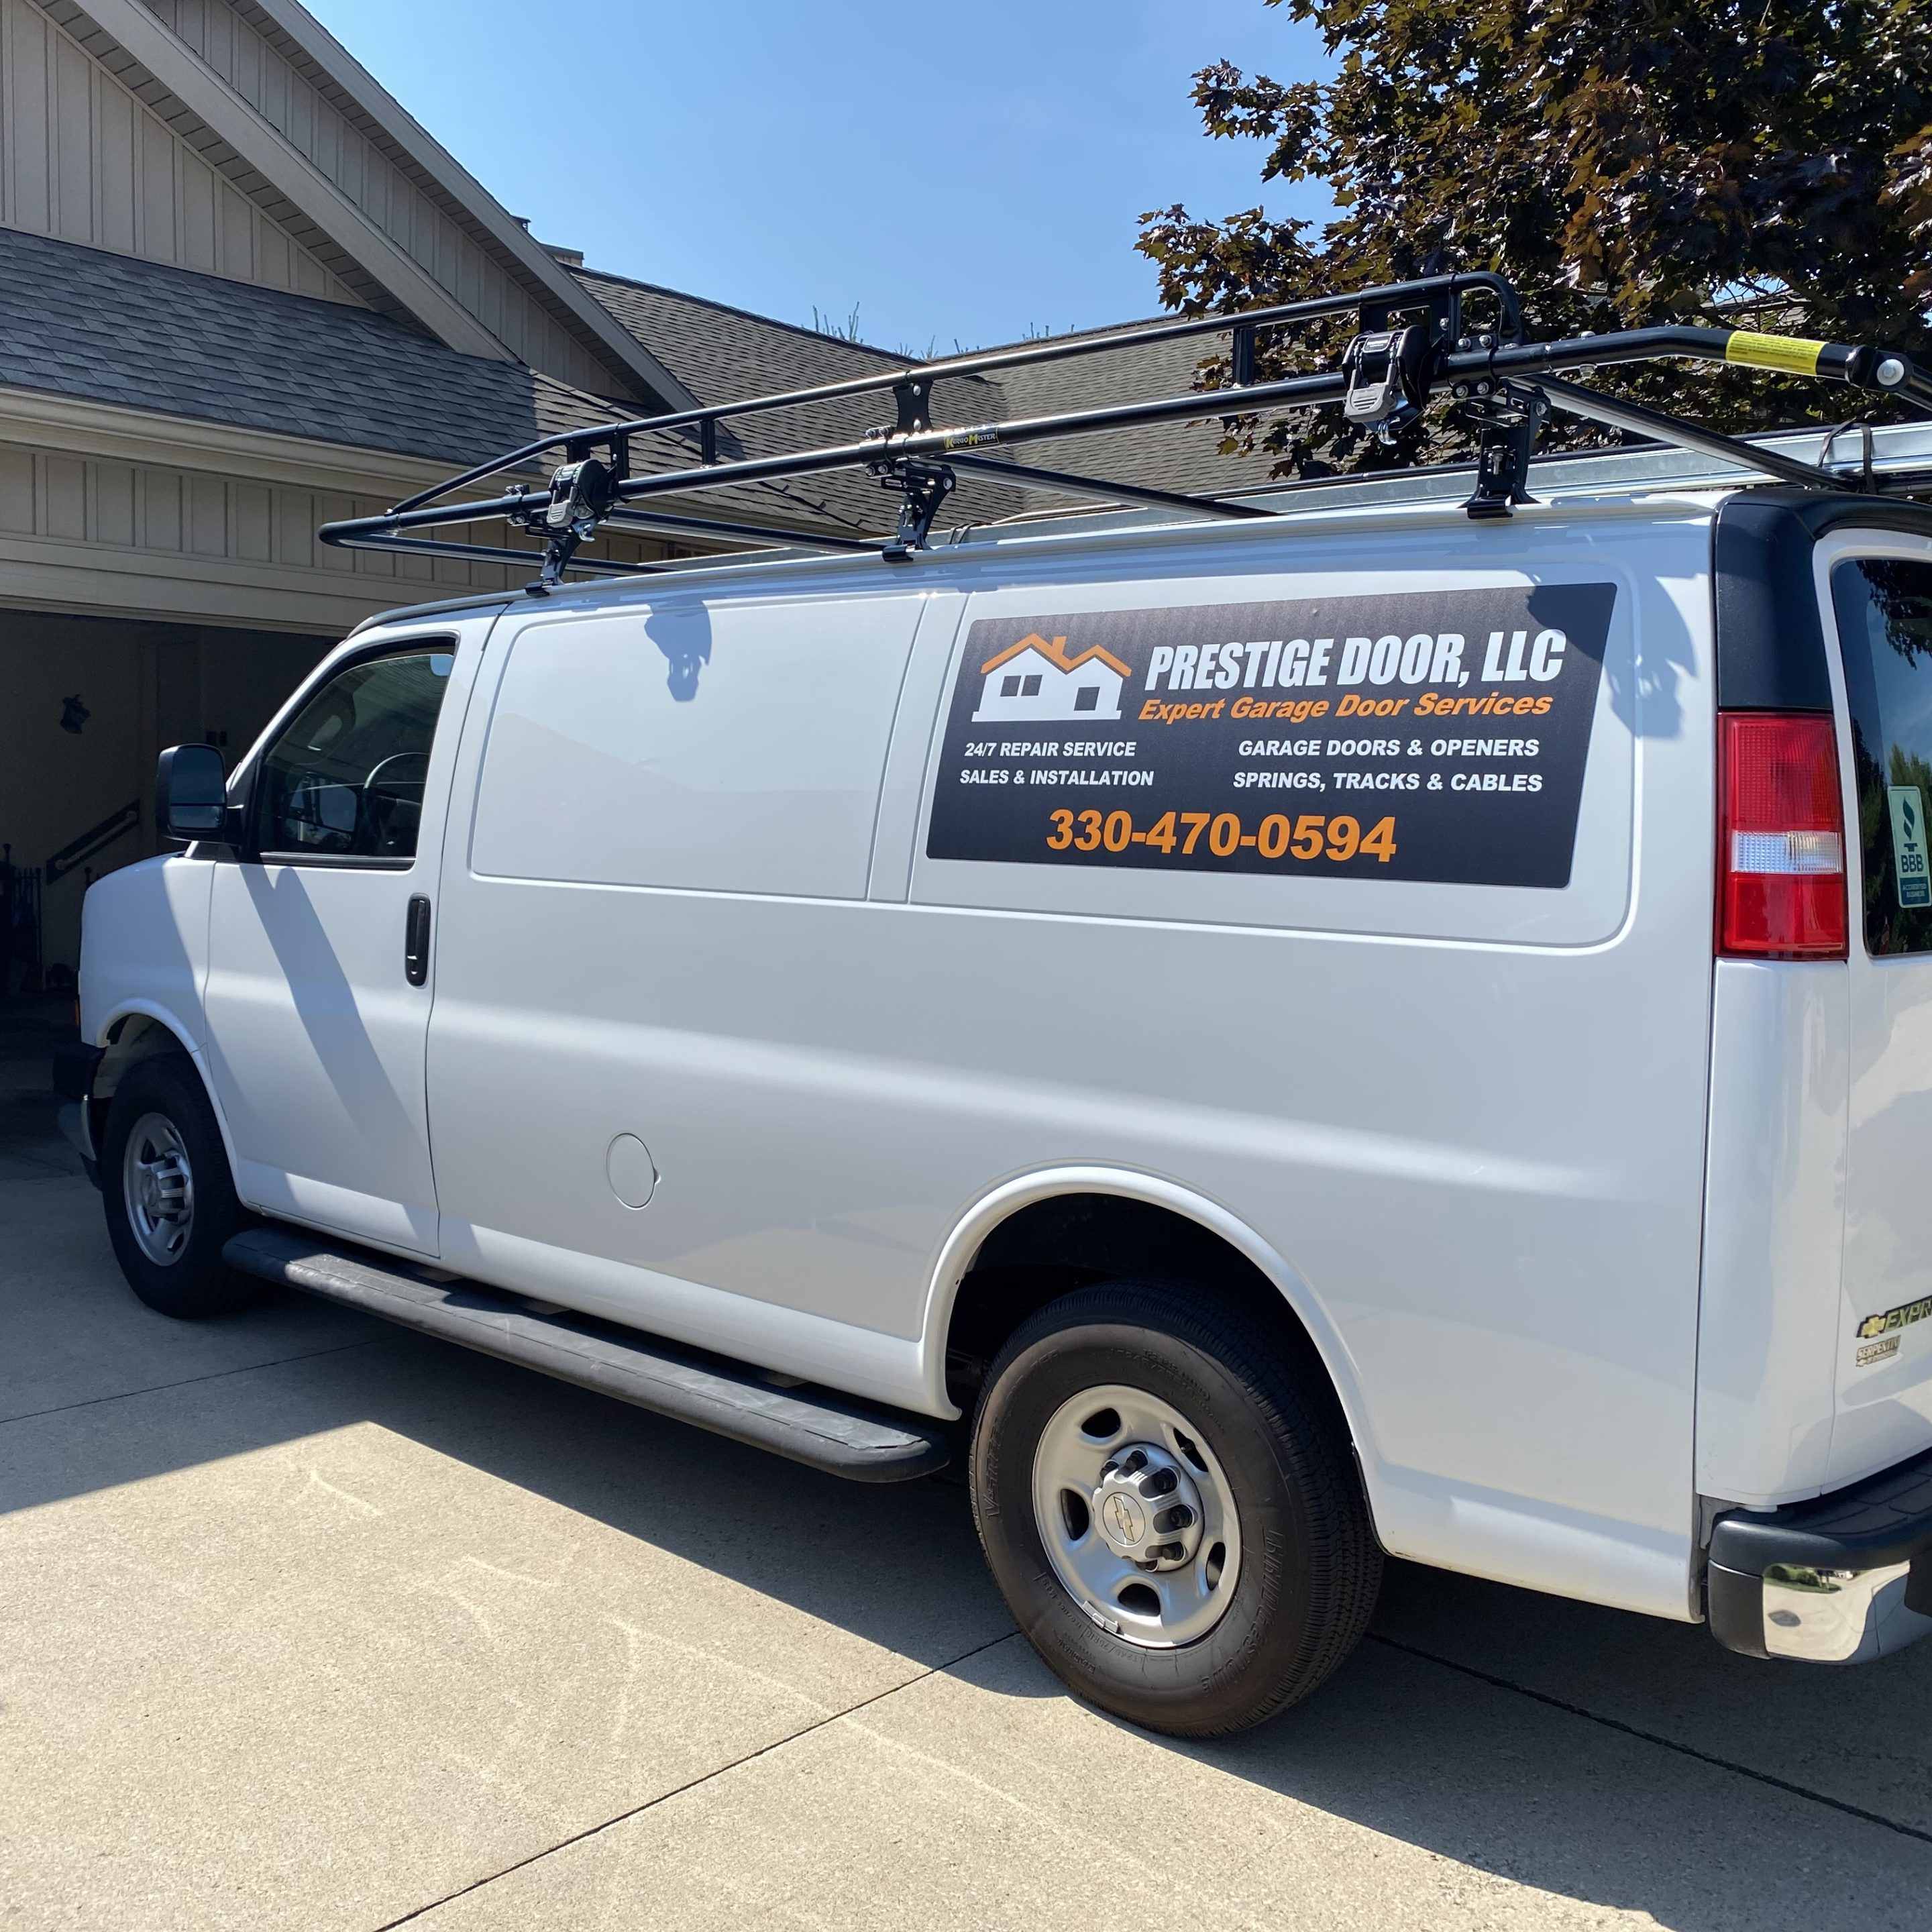 Garage Door Repair in Barberton & Surrounding Areas